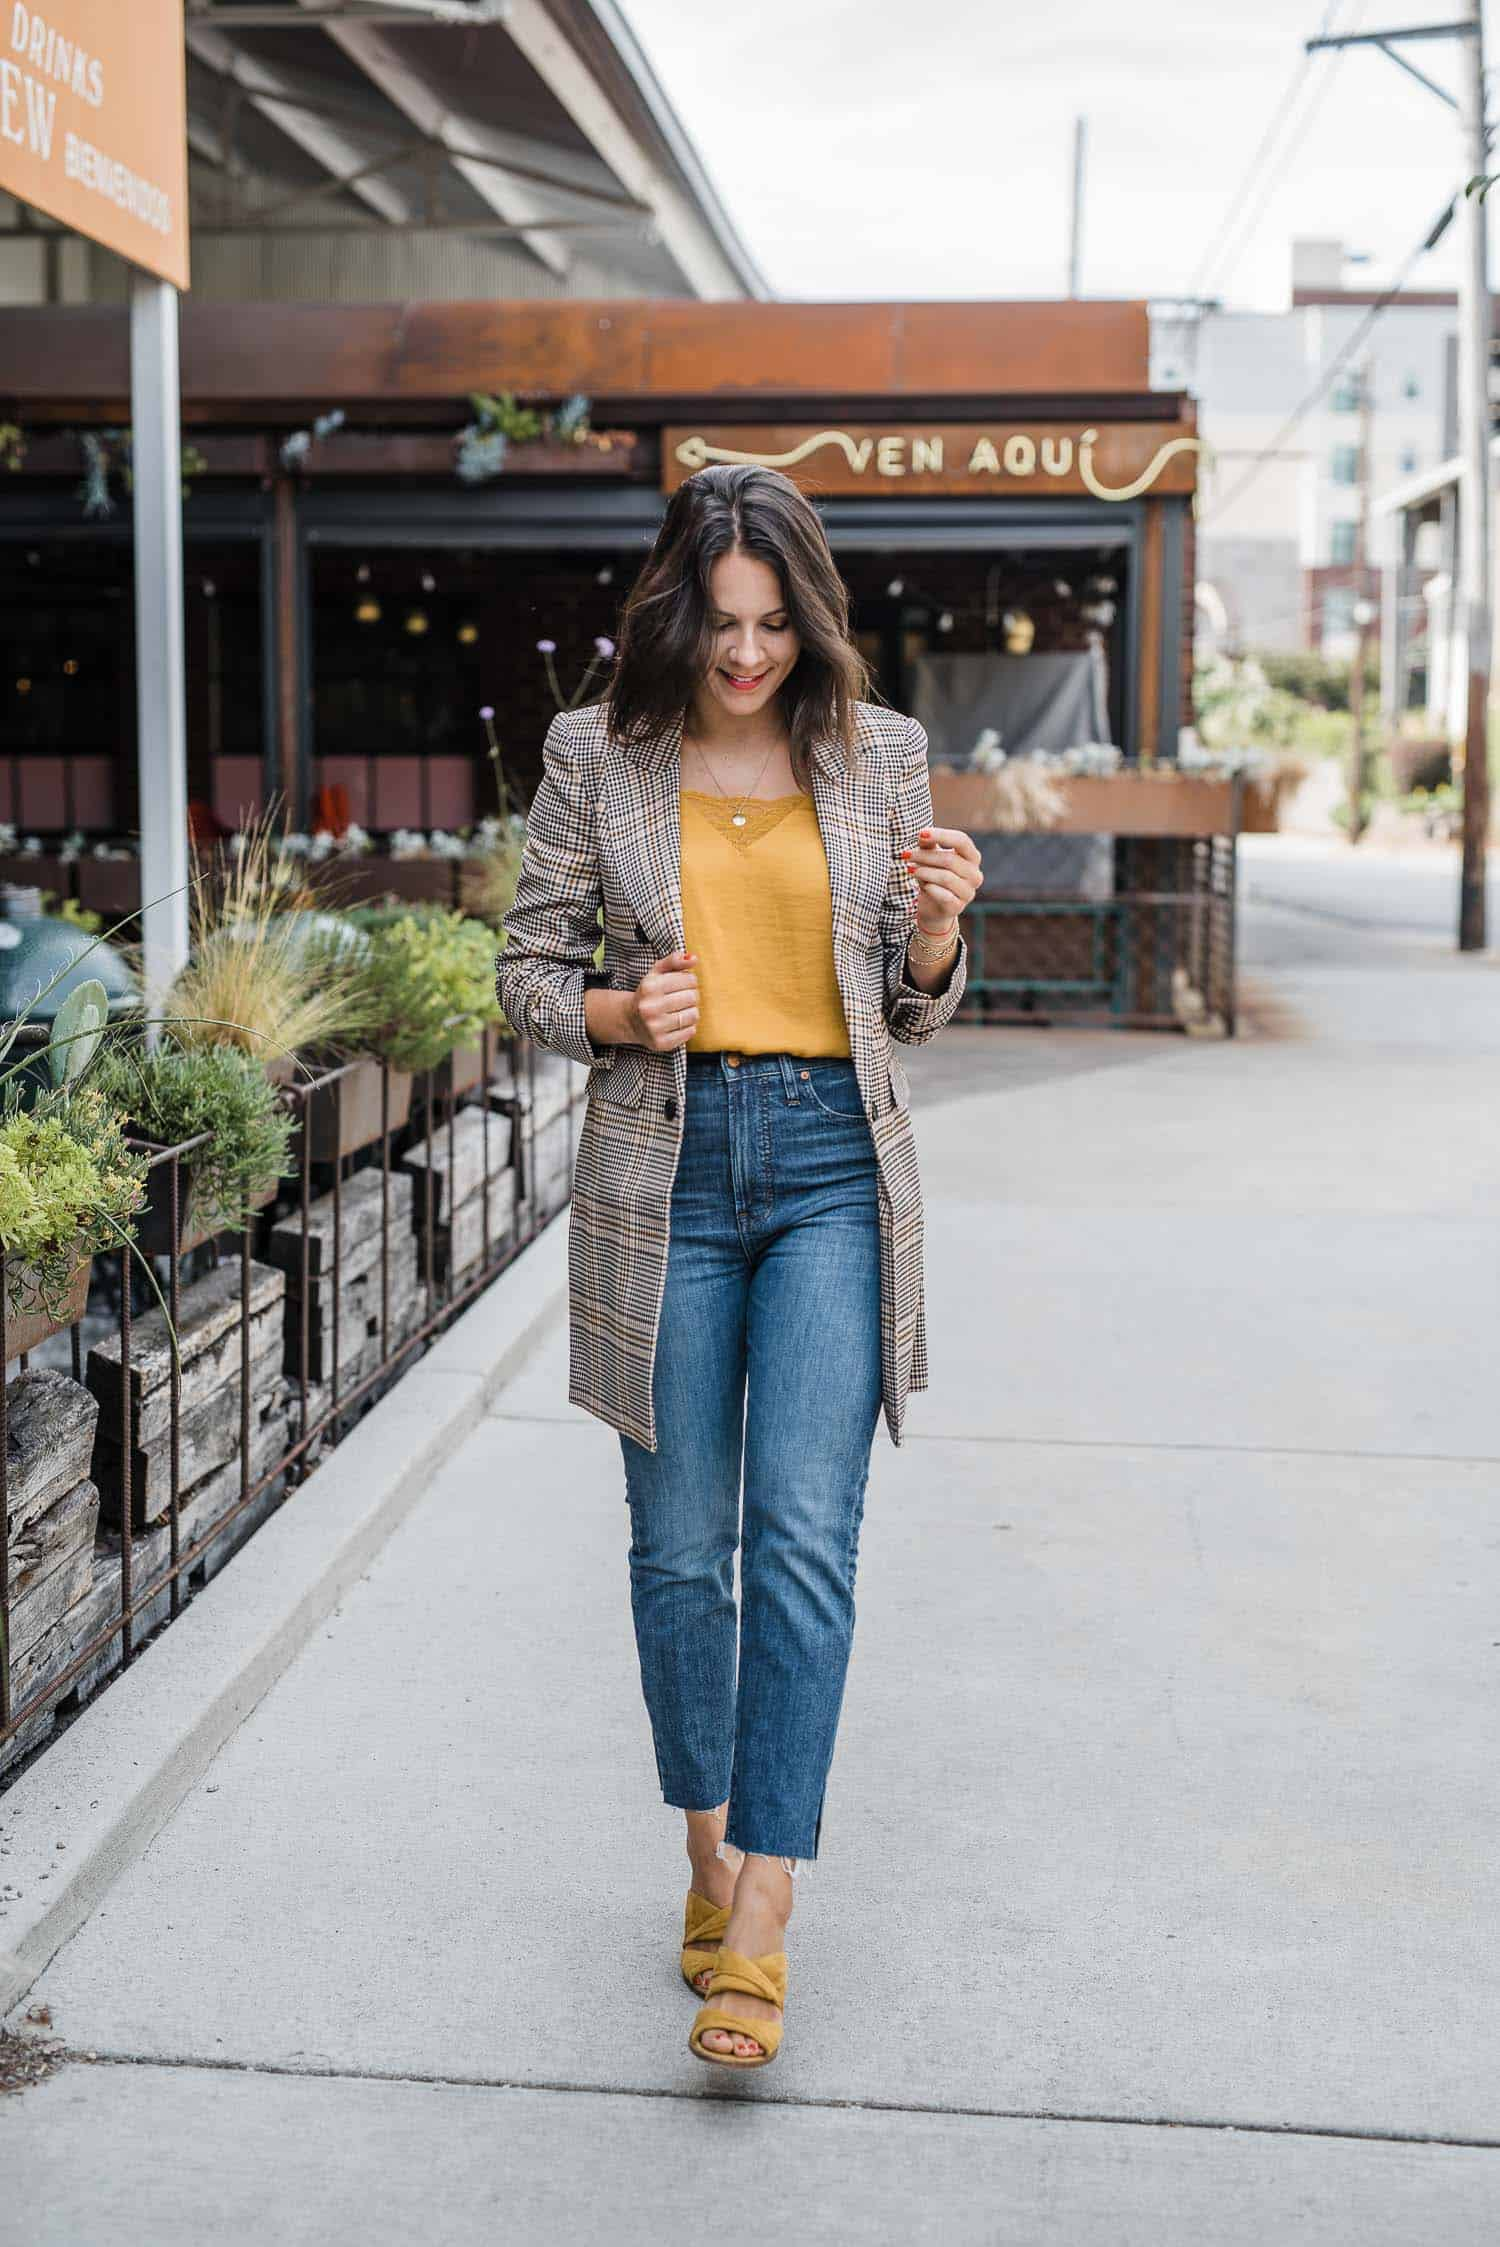 Jessica looks effortless in her blazer and mustard-colored top